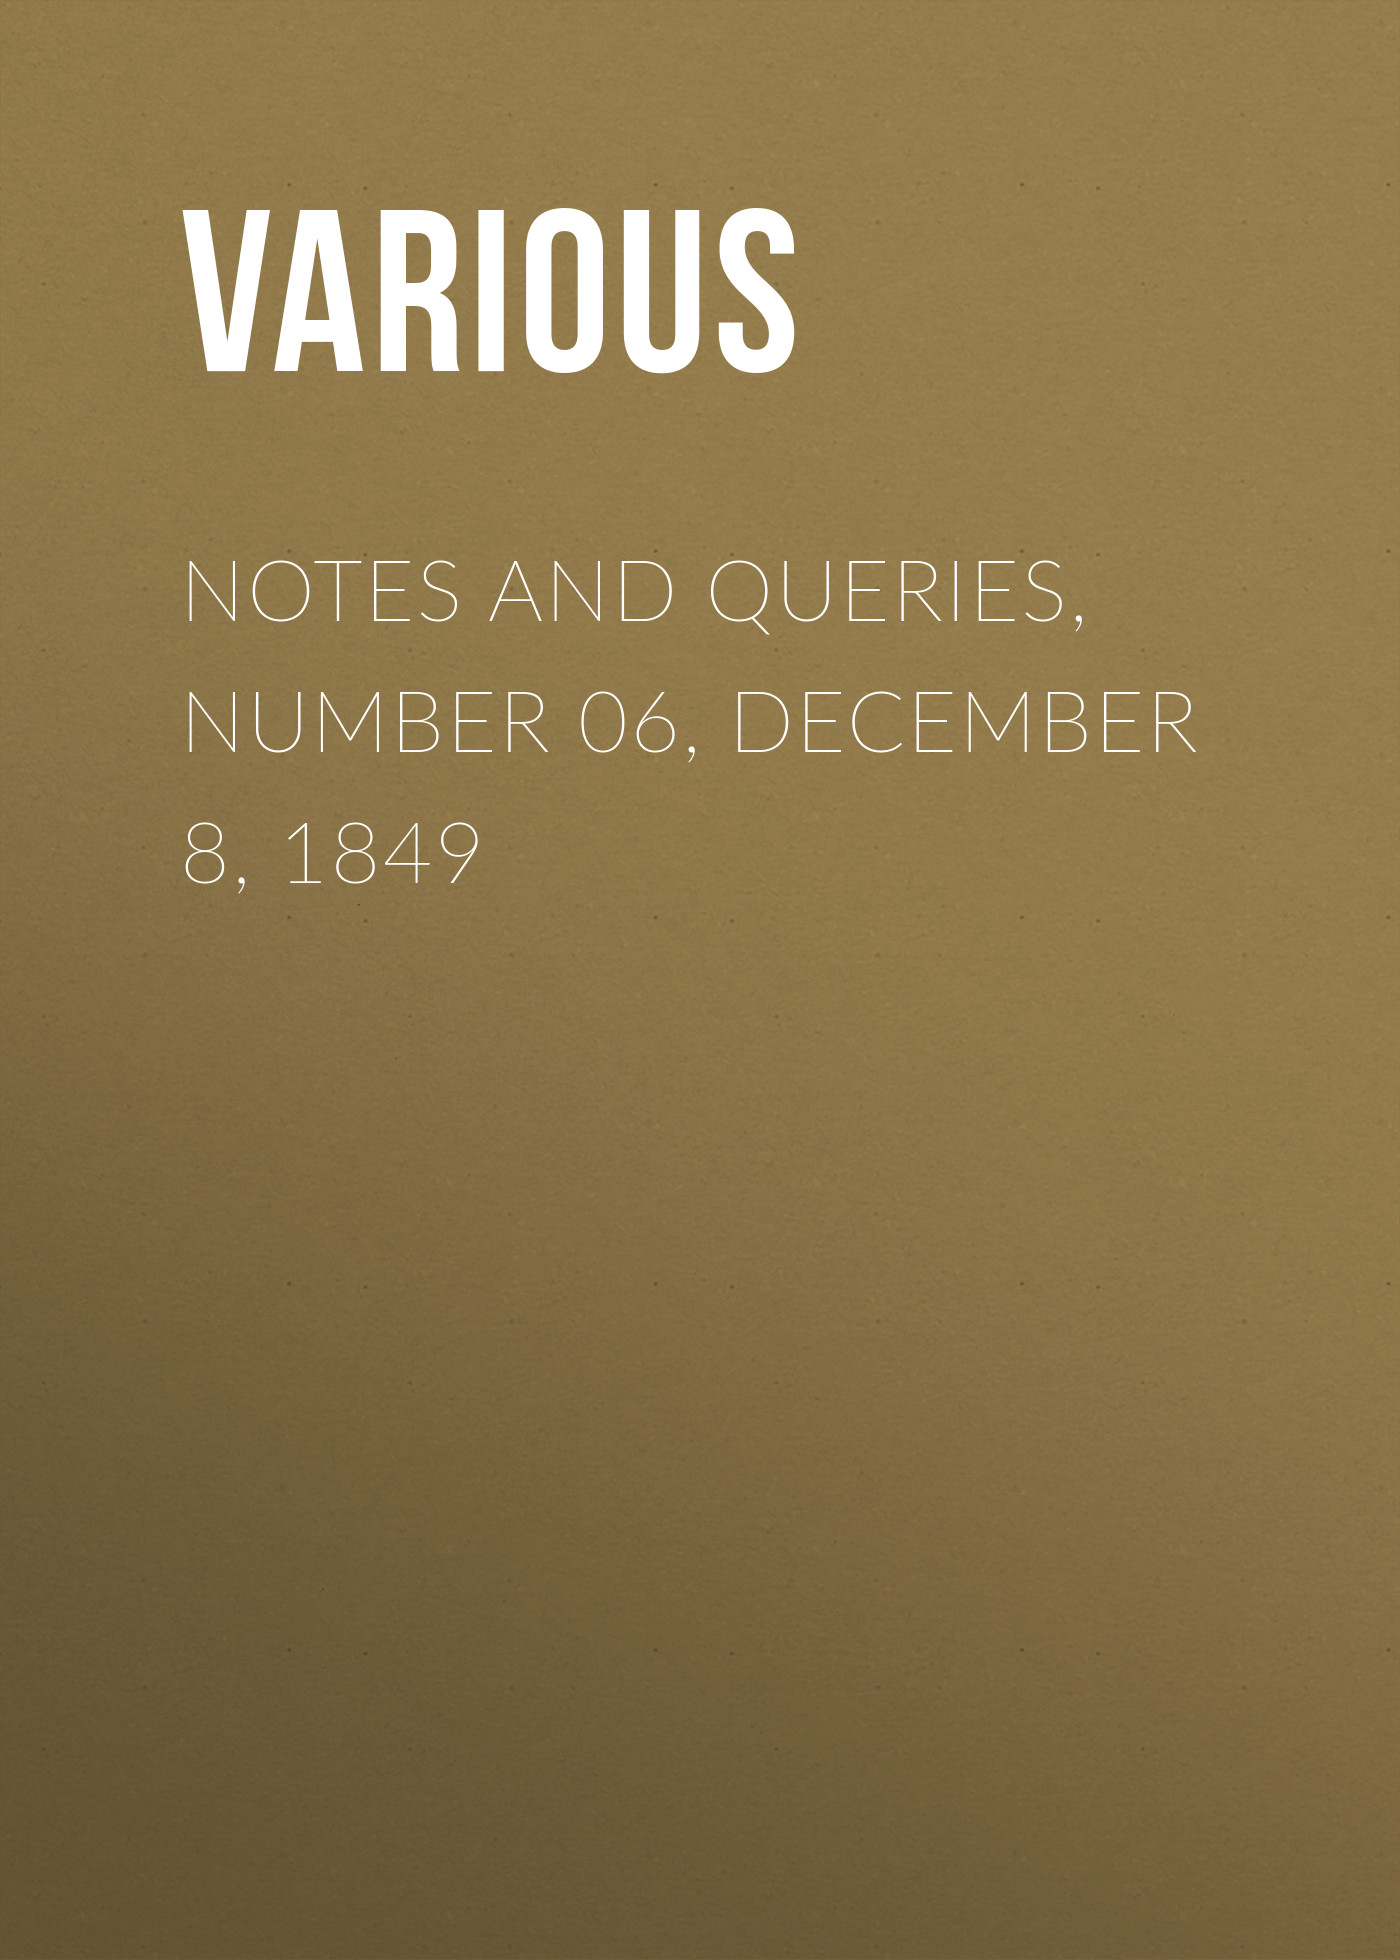 Various Notes and Queries, Number 06, December 8, 1849 детское лего december s abs 8 255